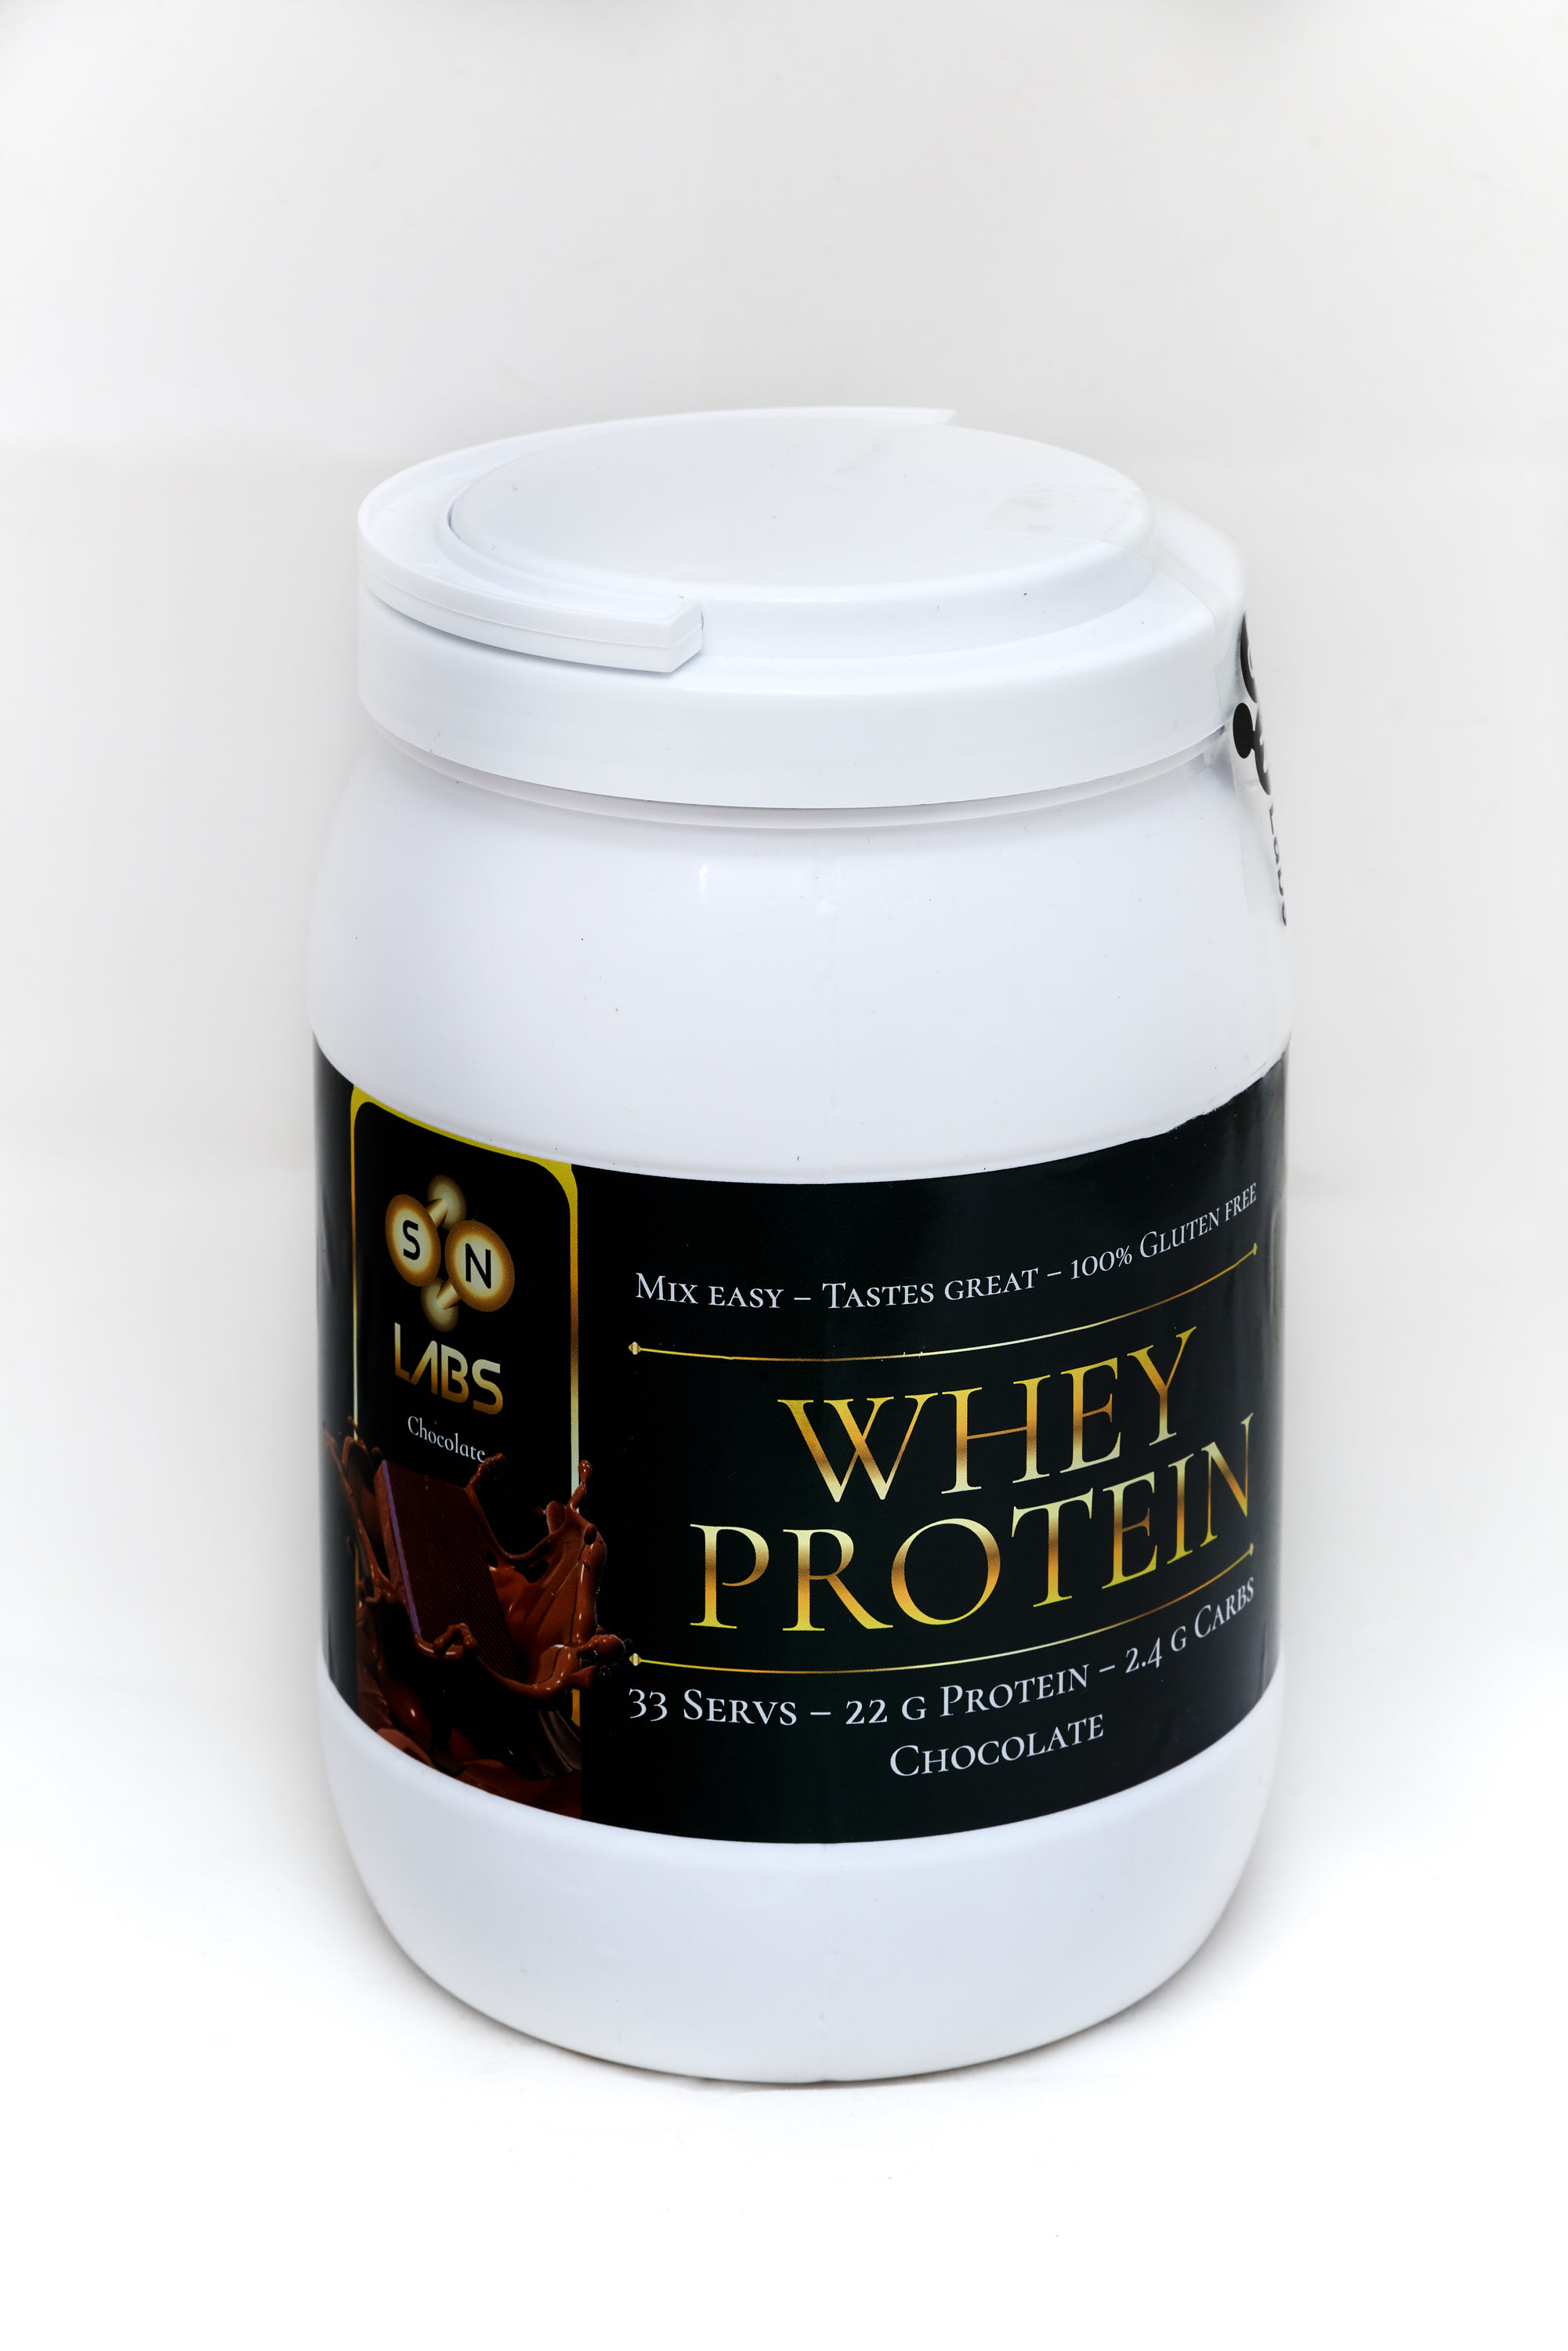 Whey ProteinПротеин<br><br>